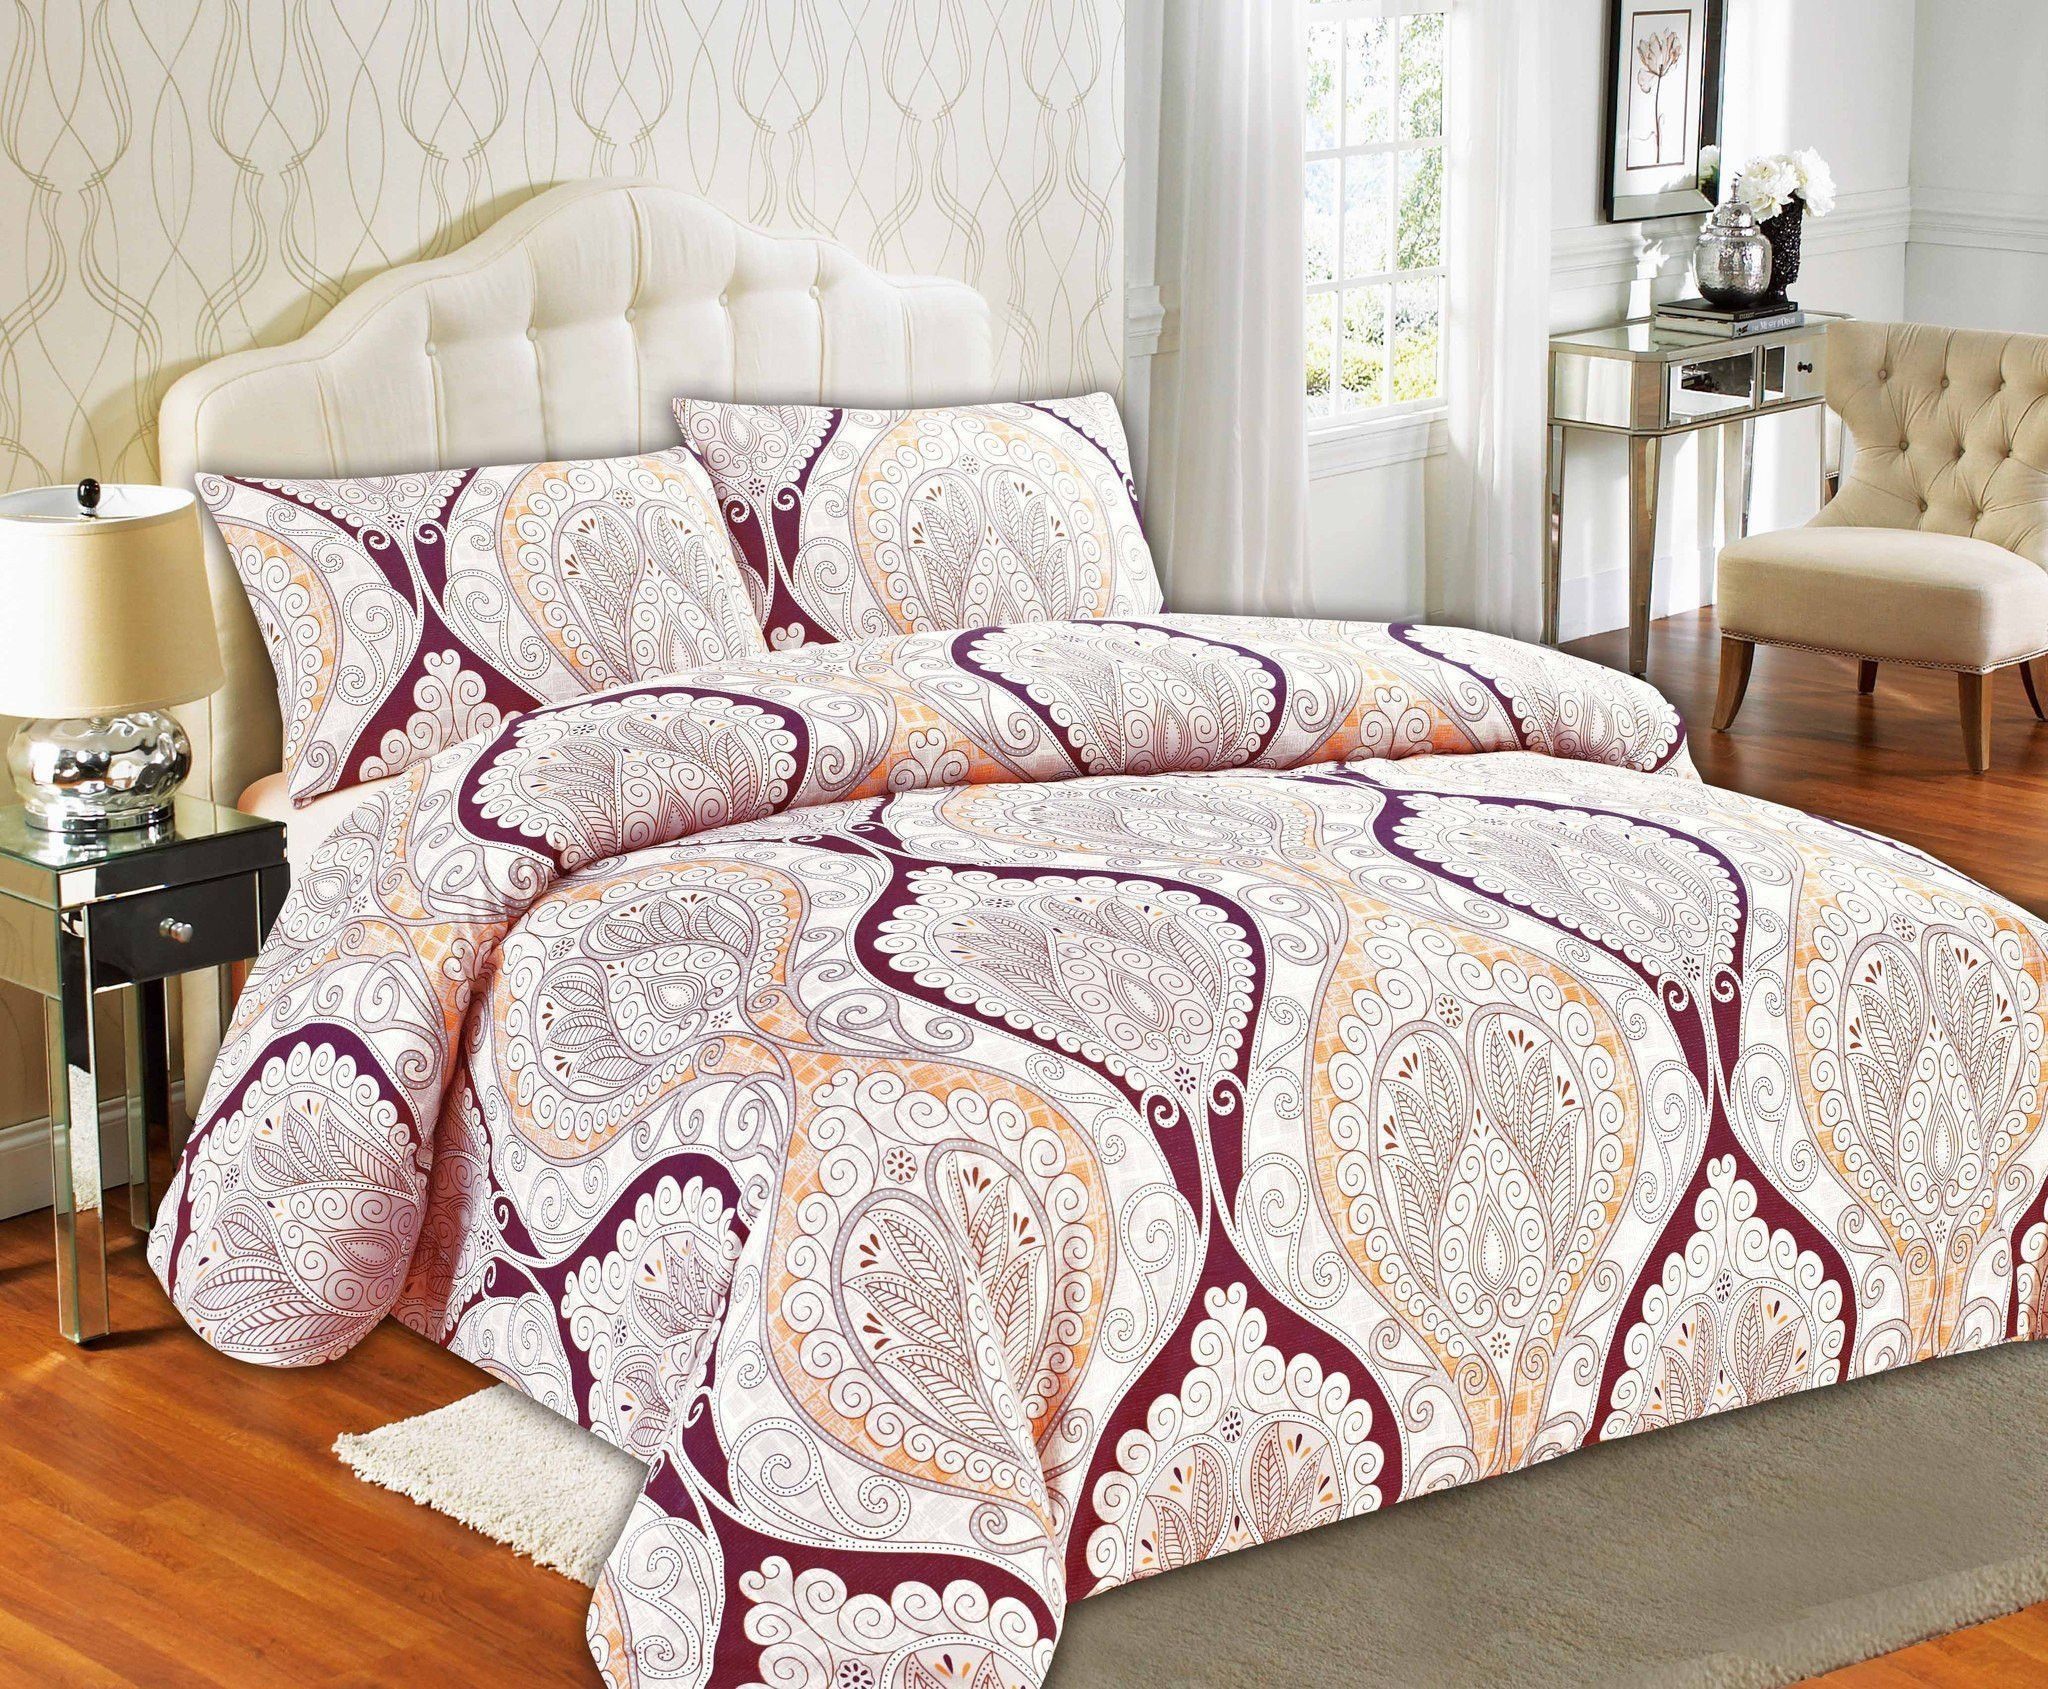 rustic cabin bath free shipping covers today comforter overstock home bedding laural duvet product